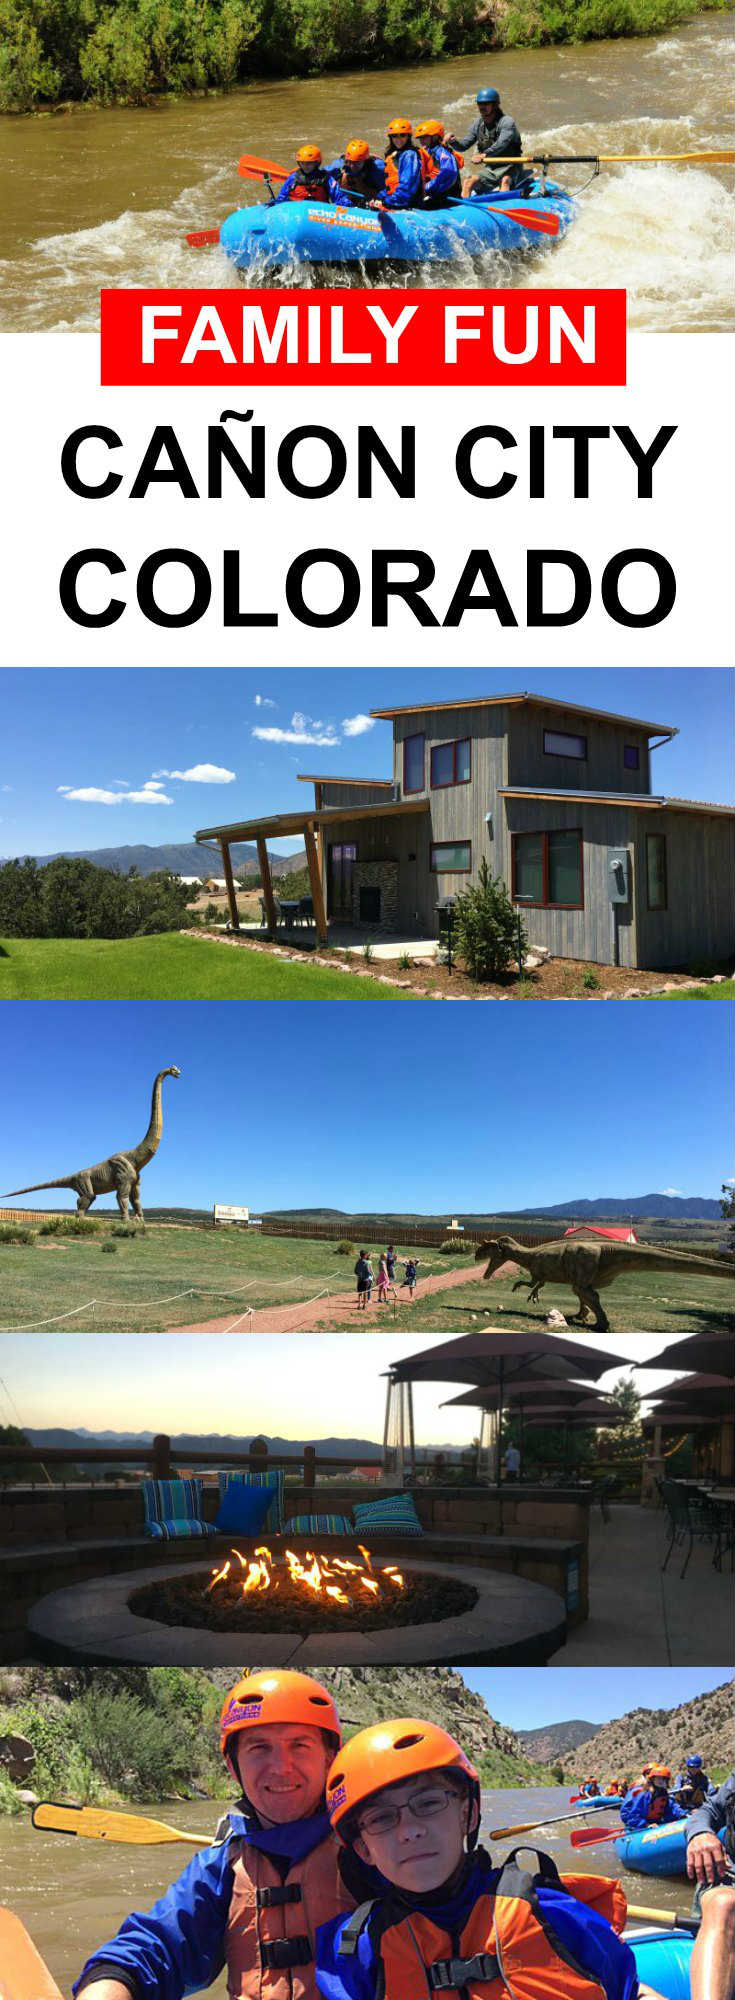 Family activities in Canon City Colorado, including white water rafting with Echo Canyon River Expeditions and visiting the Royal Gorge Dinosaur Experience.